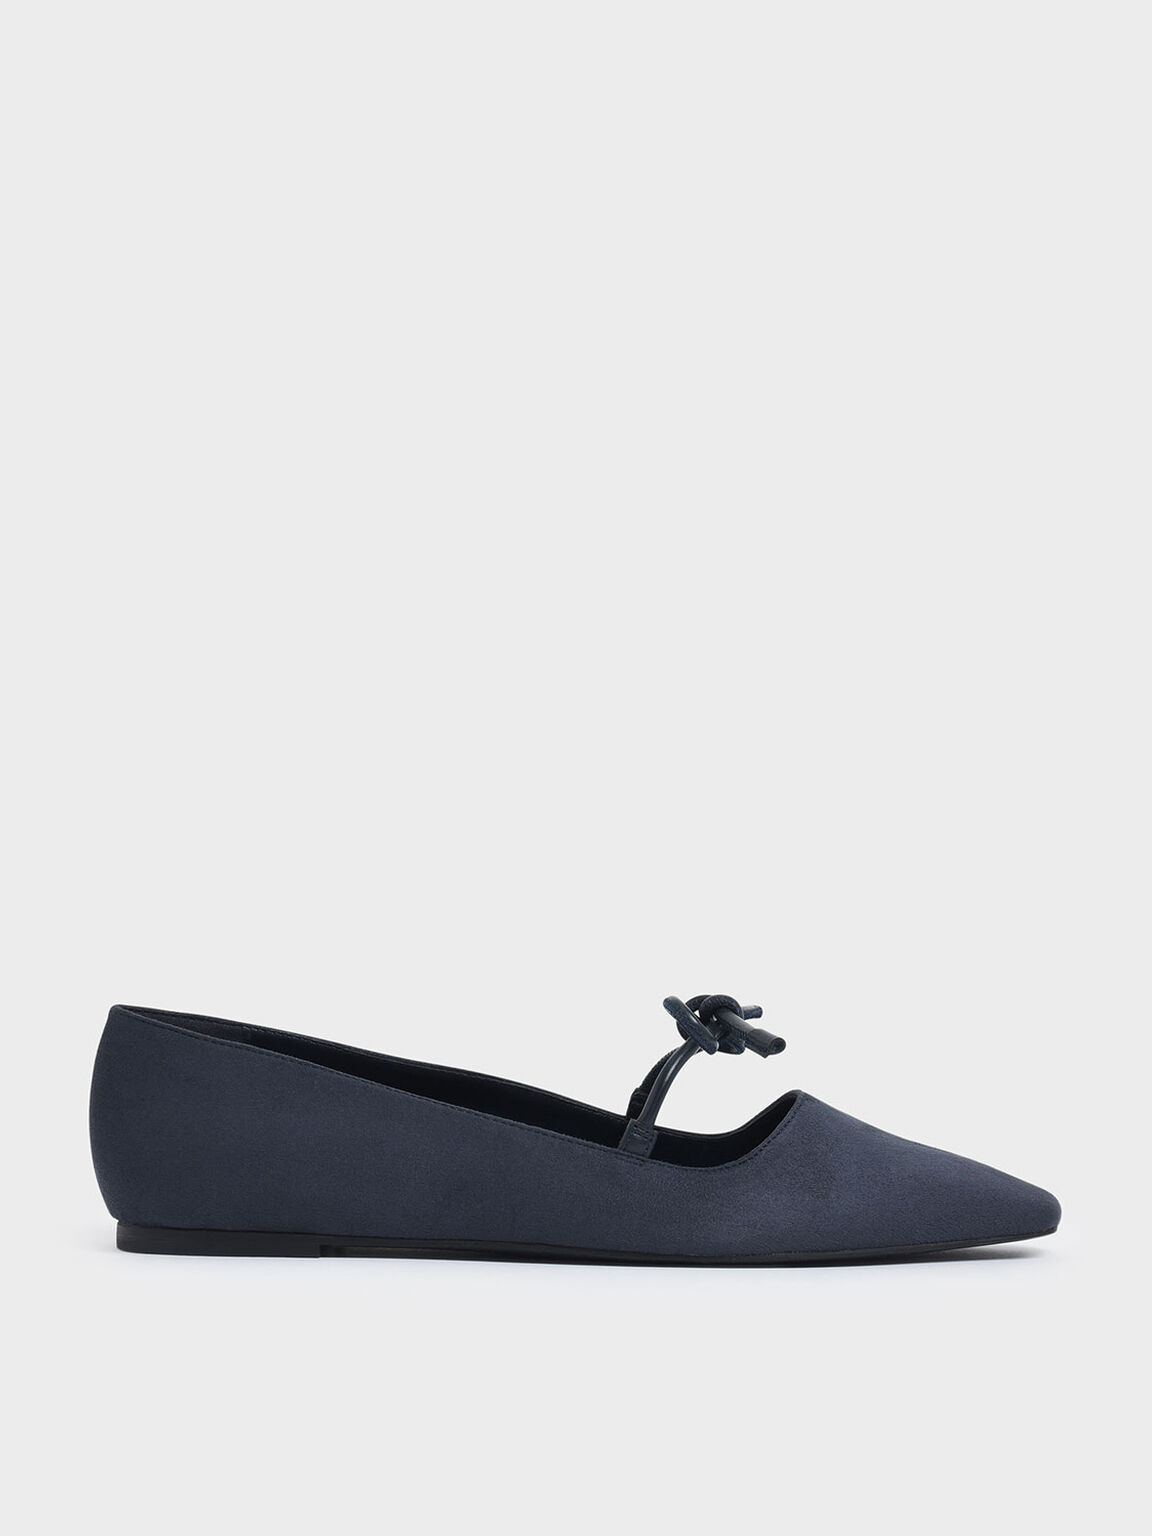 Textured Mini Square Toe Bow Strap Ballerina Flats, Dark Blue, hi-res